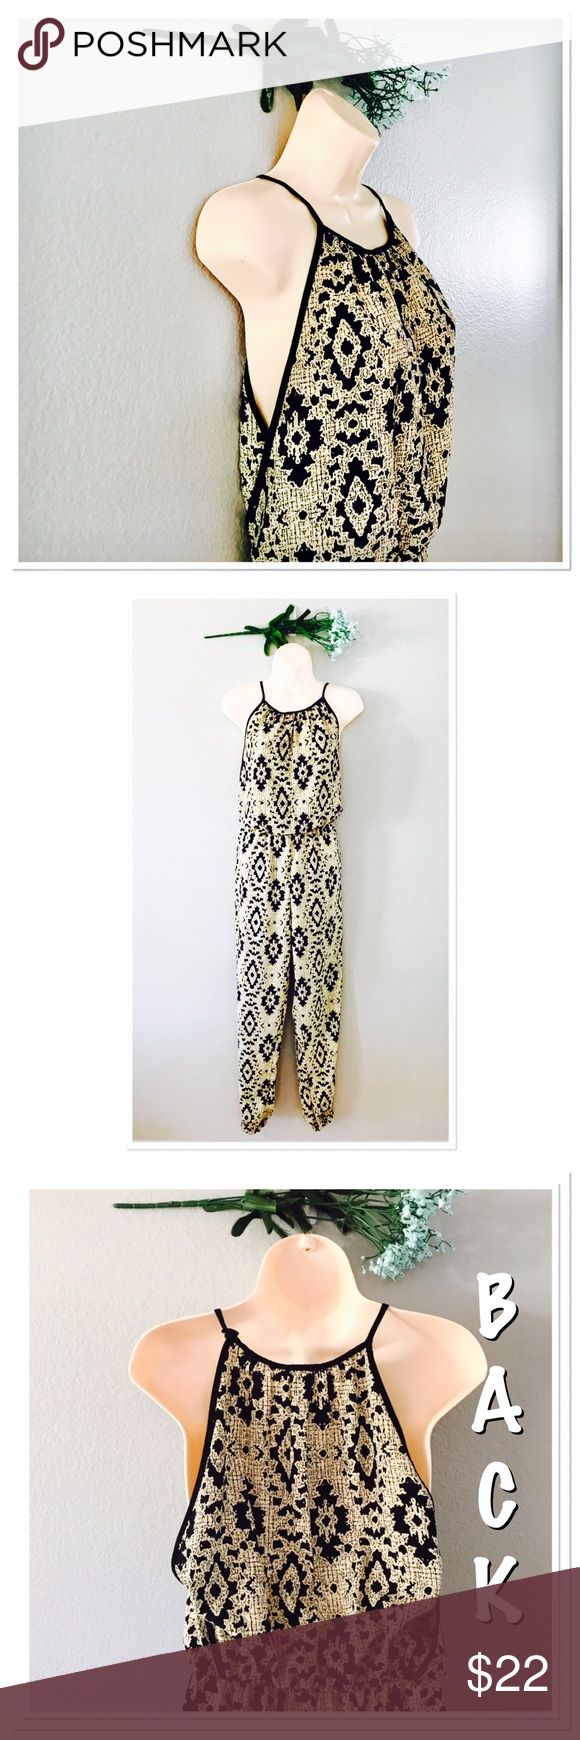 Fio Fio Aztec Jumpsuit Beautiful! In excellent condition! No flaws! Super lightweight! Cream and black. Length 55 in, inseam 26, waist 11.5 flat not stretched, waist stretched 17.5 flat, leg 10 in flat, hip 19 in flat. 100% Polyester. Elastic leg opening. Fio Fio Dresses